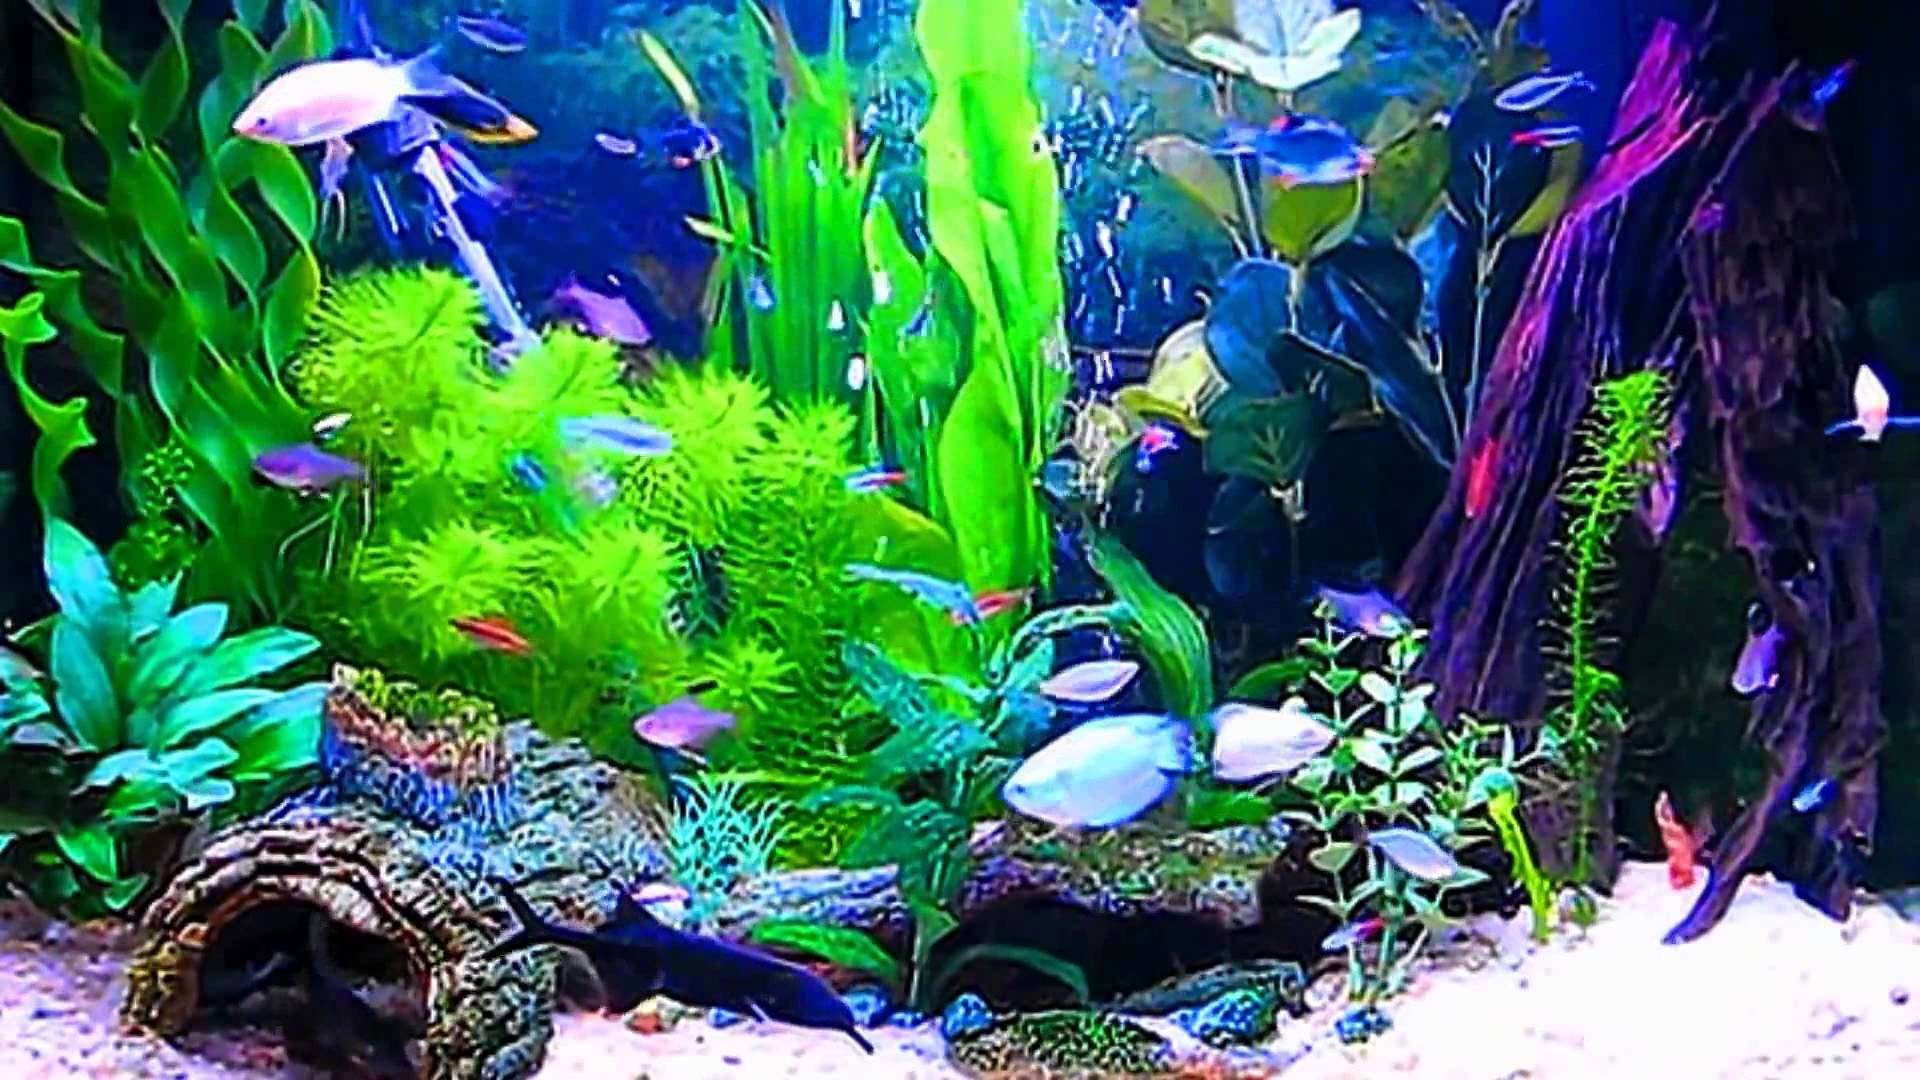 HD Aquarium ScreenSaver Windows and Android Full HD 1920x1080